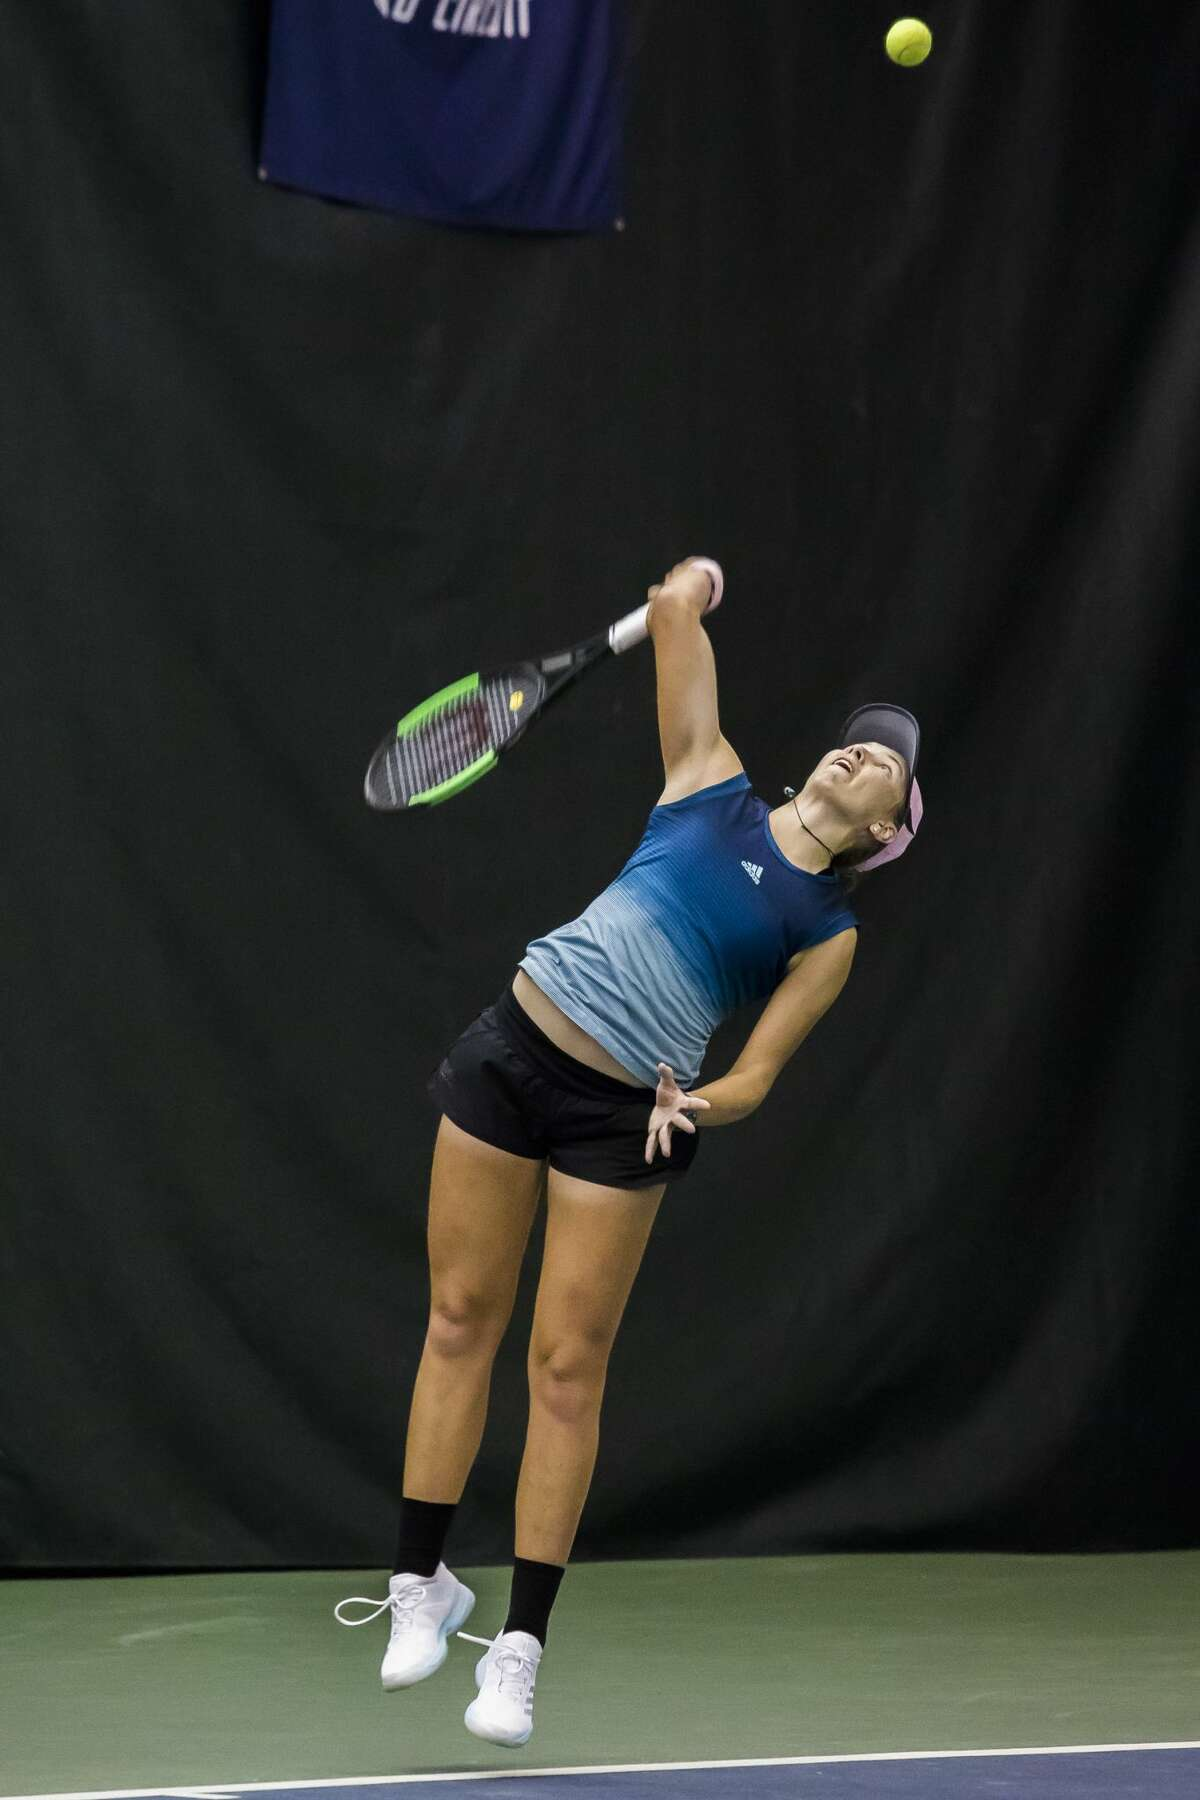 Ellie Coleman of Midland serves the ball during a match against Jovana Jaksic of Serbia during the qualifying tournament of the Dow Tennis Classic on Monday, Jan. 28, 2019 at the Greater Midland Tennis Center. (Katy Kildee/kkildee@mdn.net)